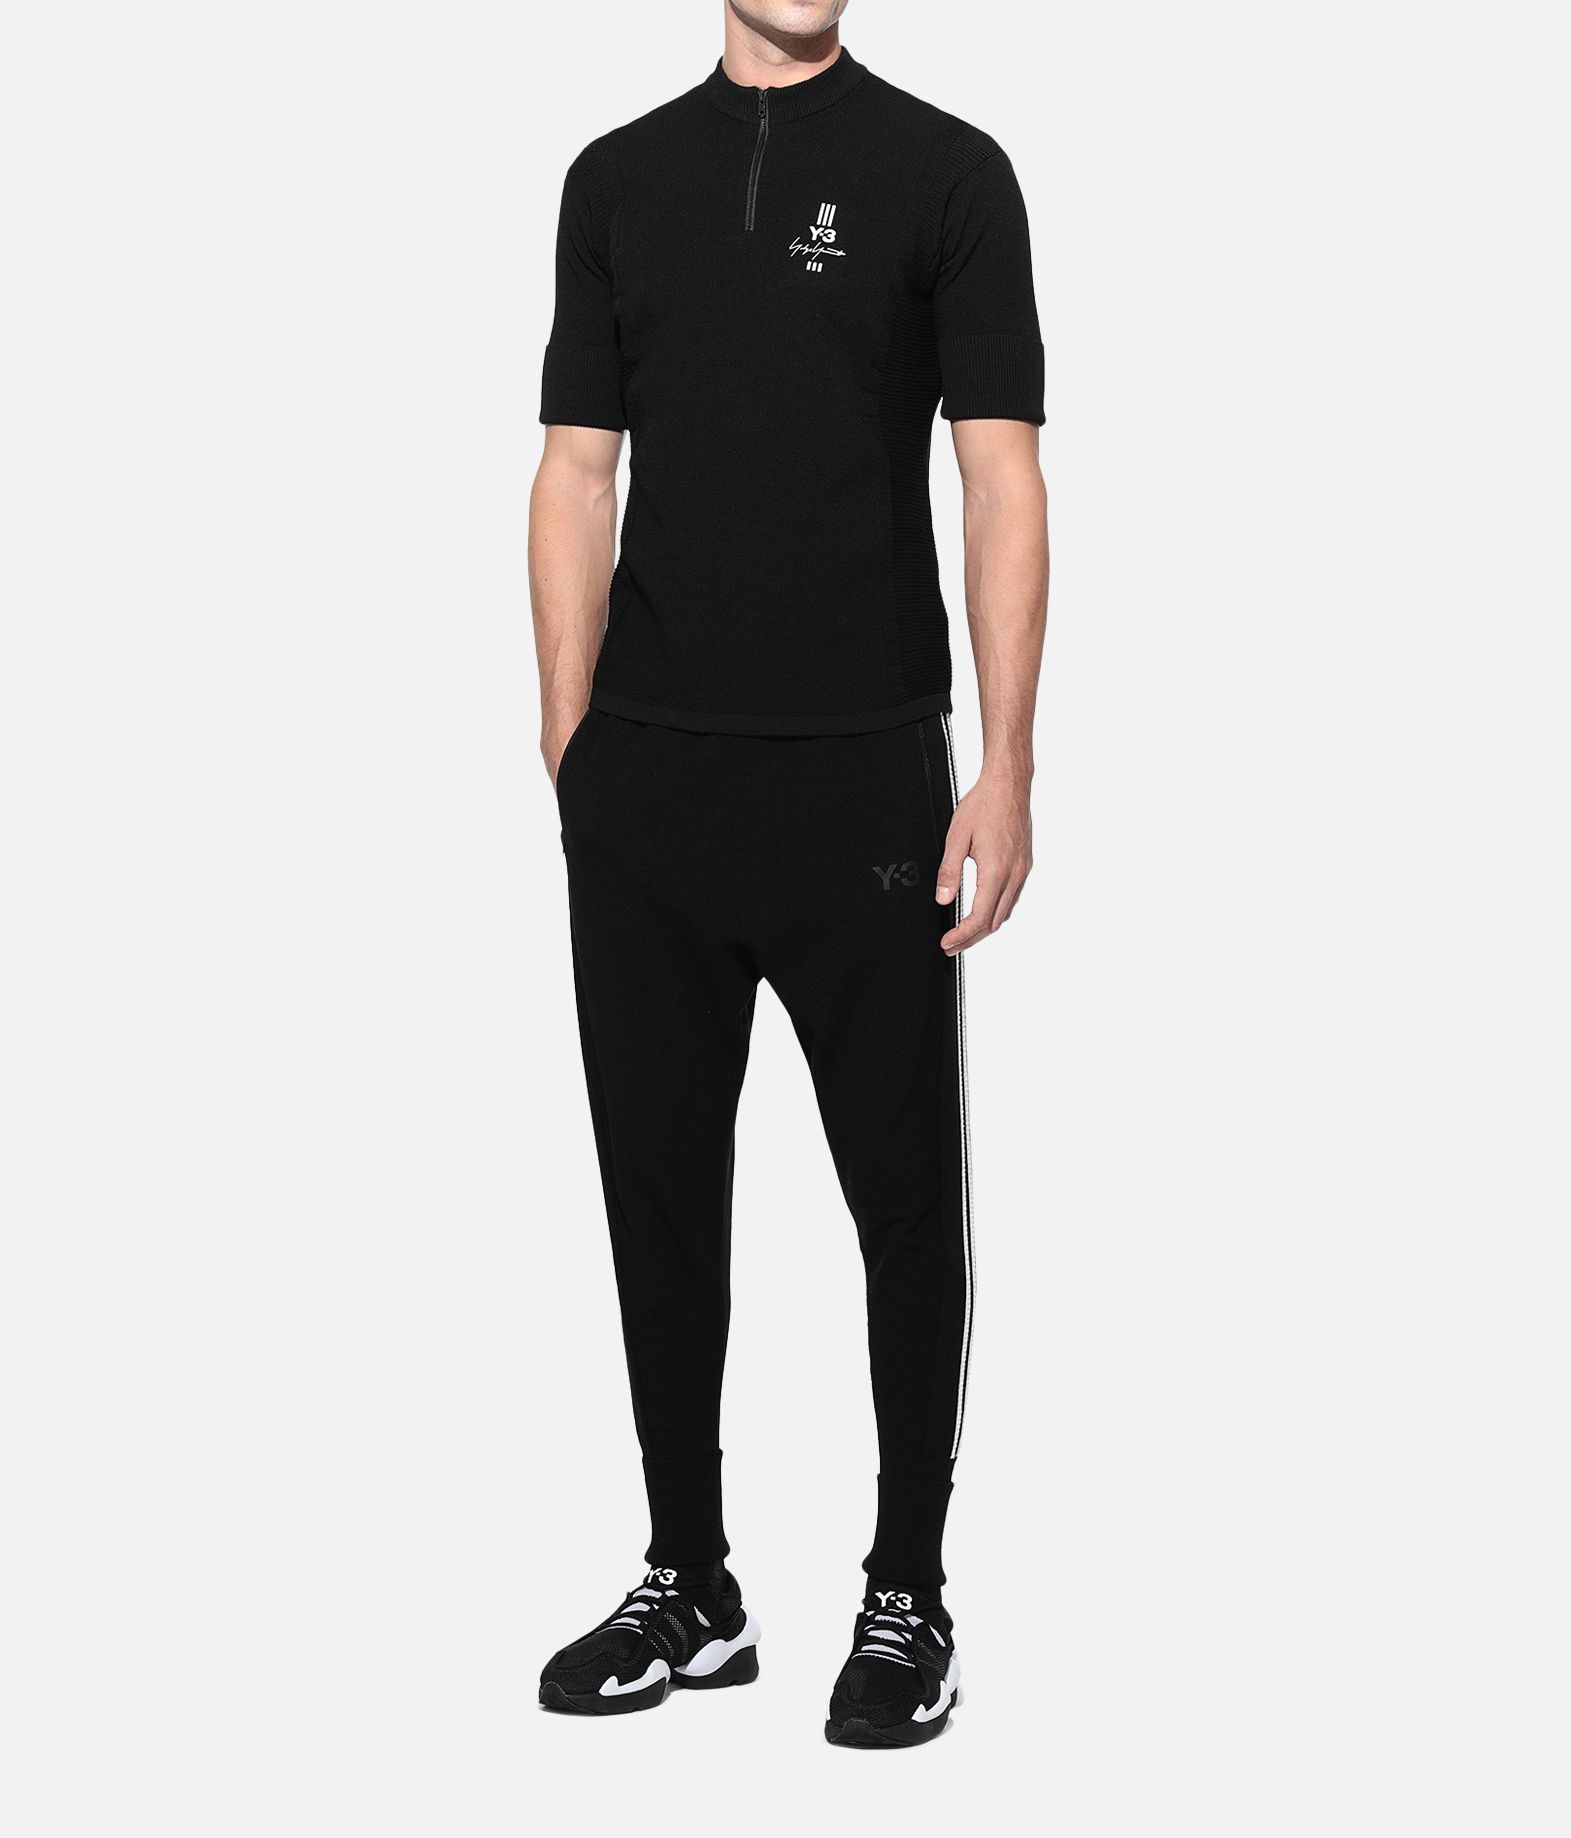 Y-3 Y-3 Knit Tee Short sleeve t-shirt Man a